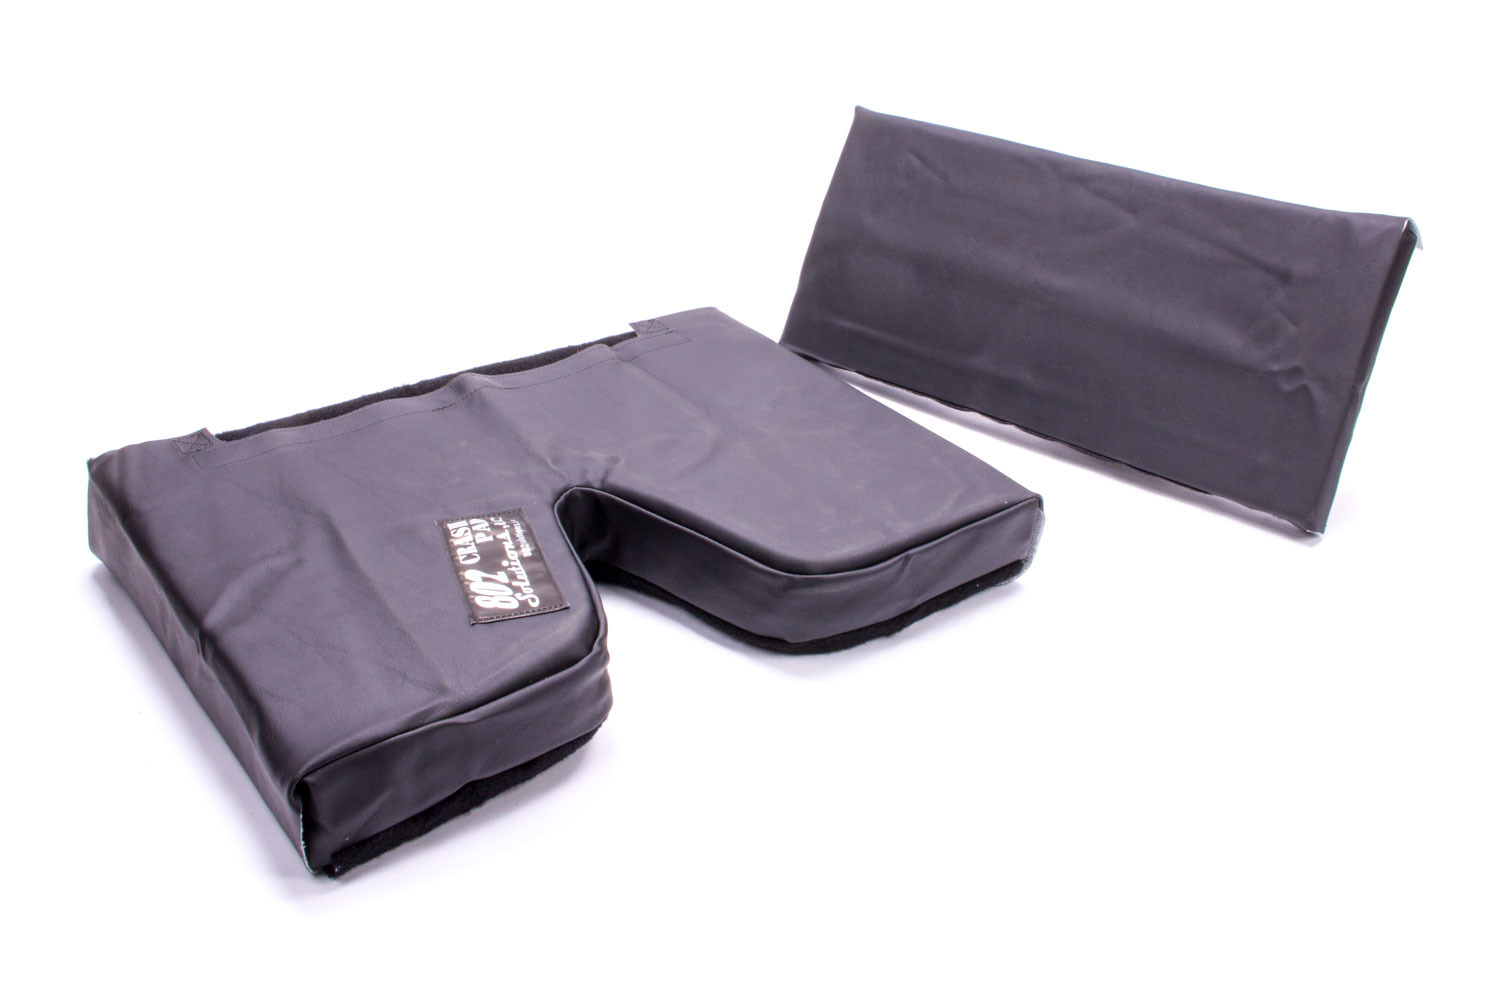 The Crash Pad CP02-08LM Seat Pad, Crash Pad, 2 in Thick Bottom, 8 in Tall Lumbar, Hook and Loop Attachment, Vinyl / Nylon, Black, 14-18 in Wide Seats, Each